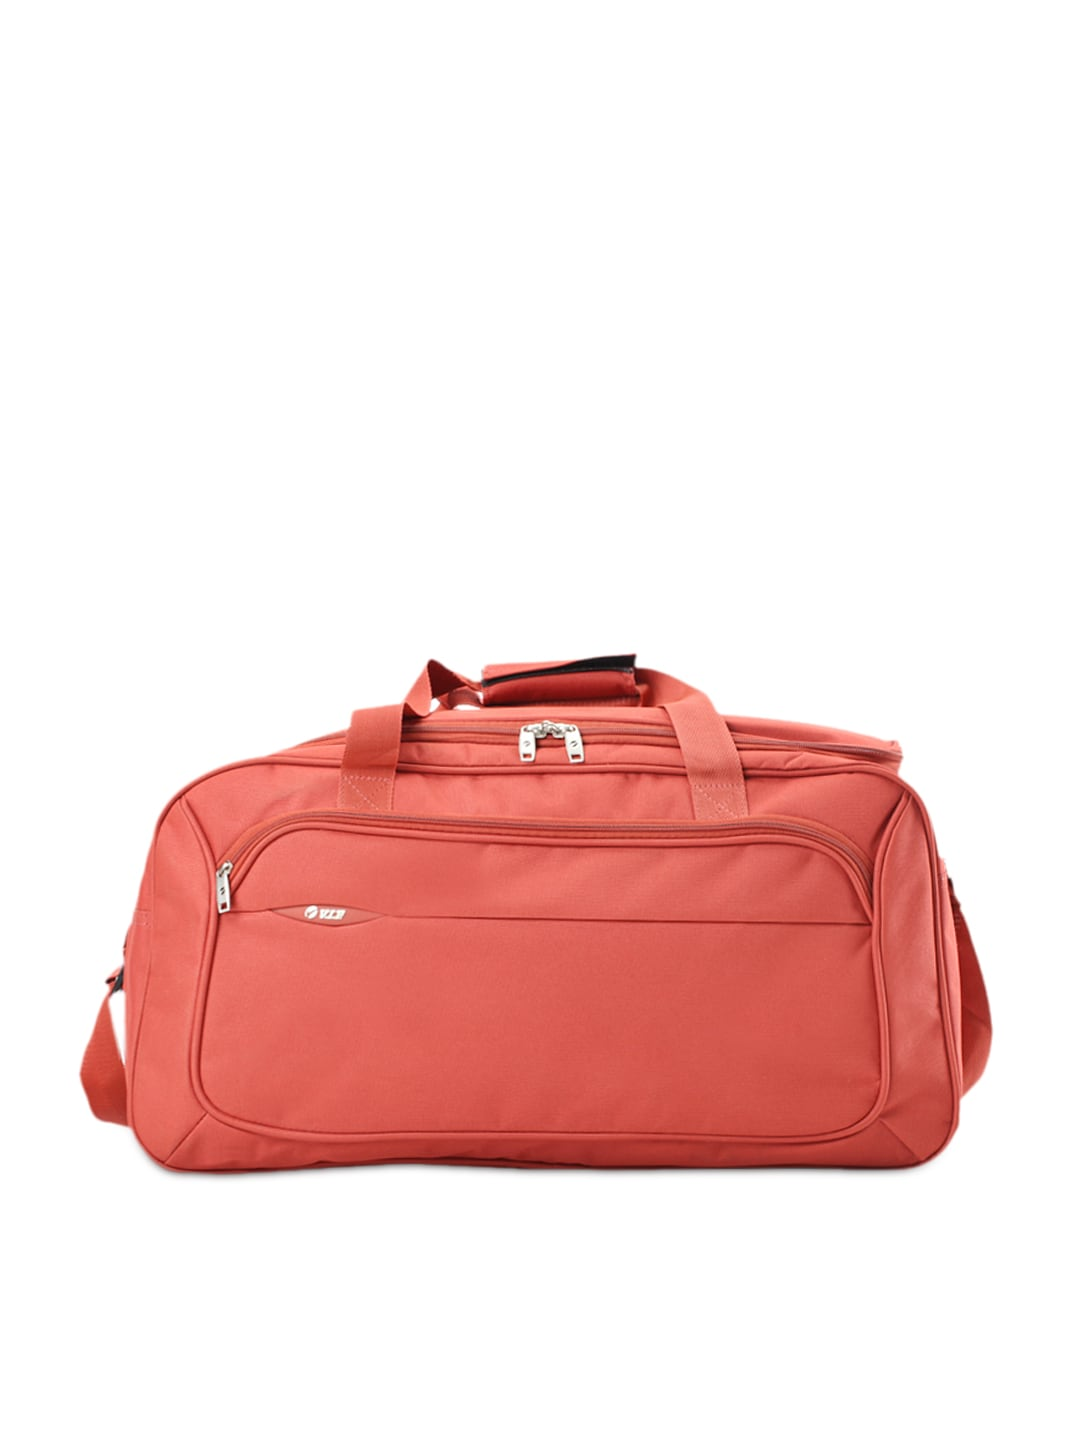 a87af070df vip duffle bags - Price list in India